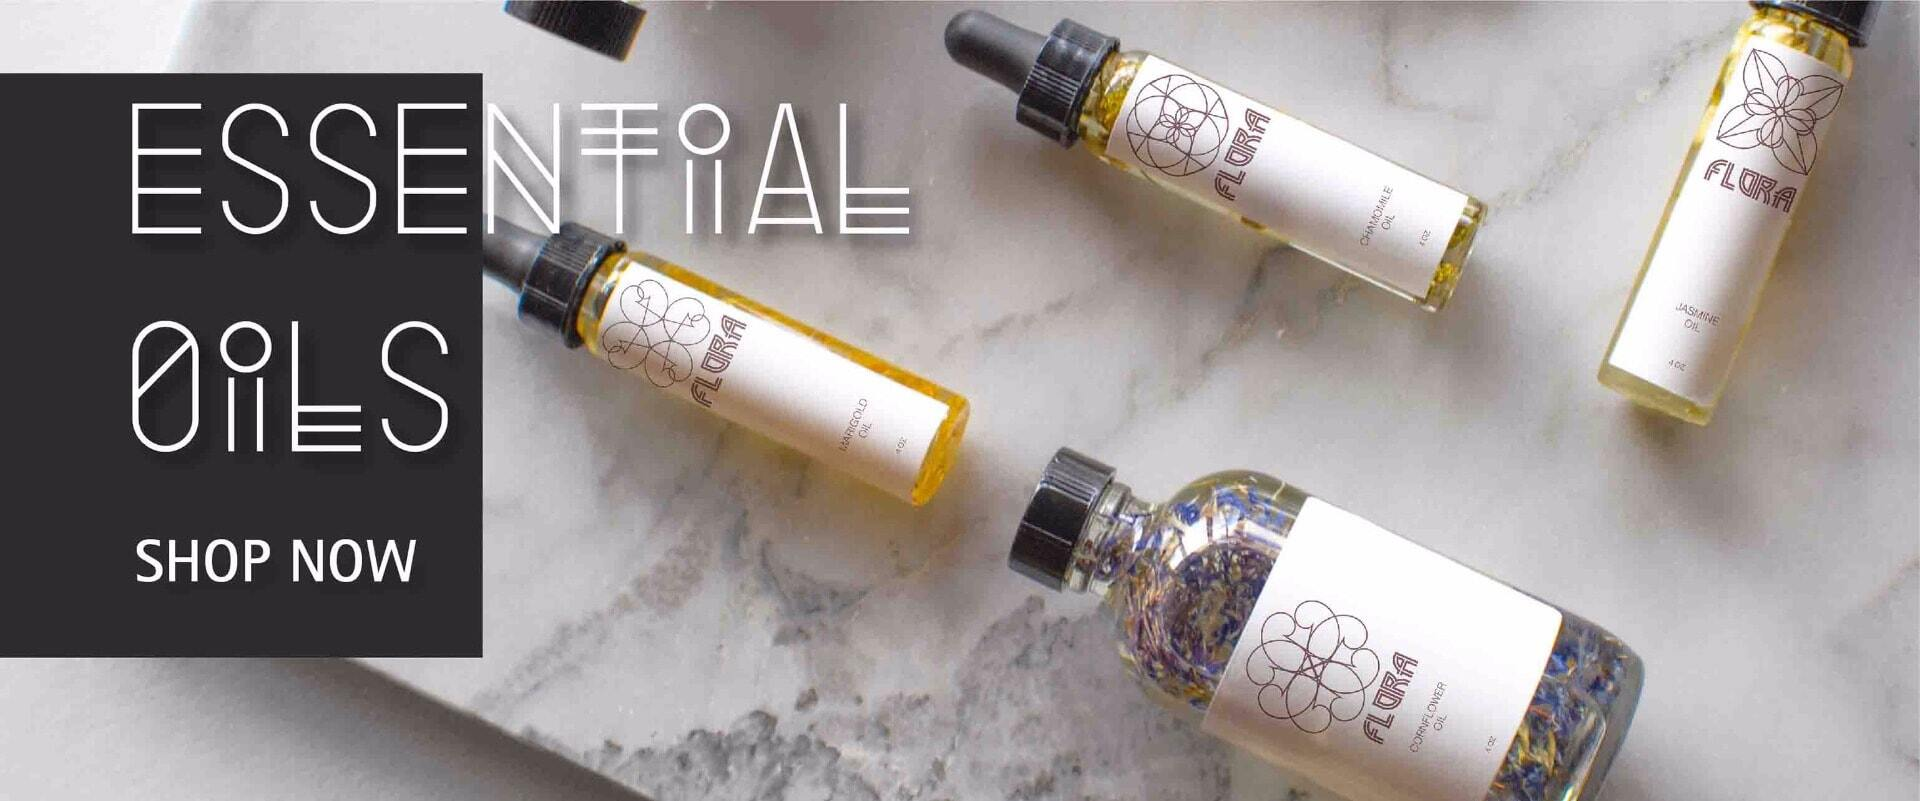 essential oils banner